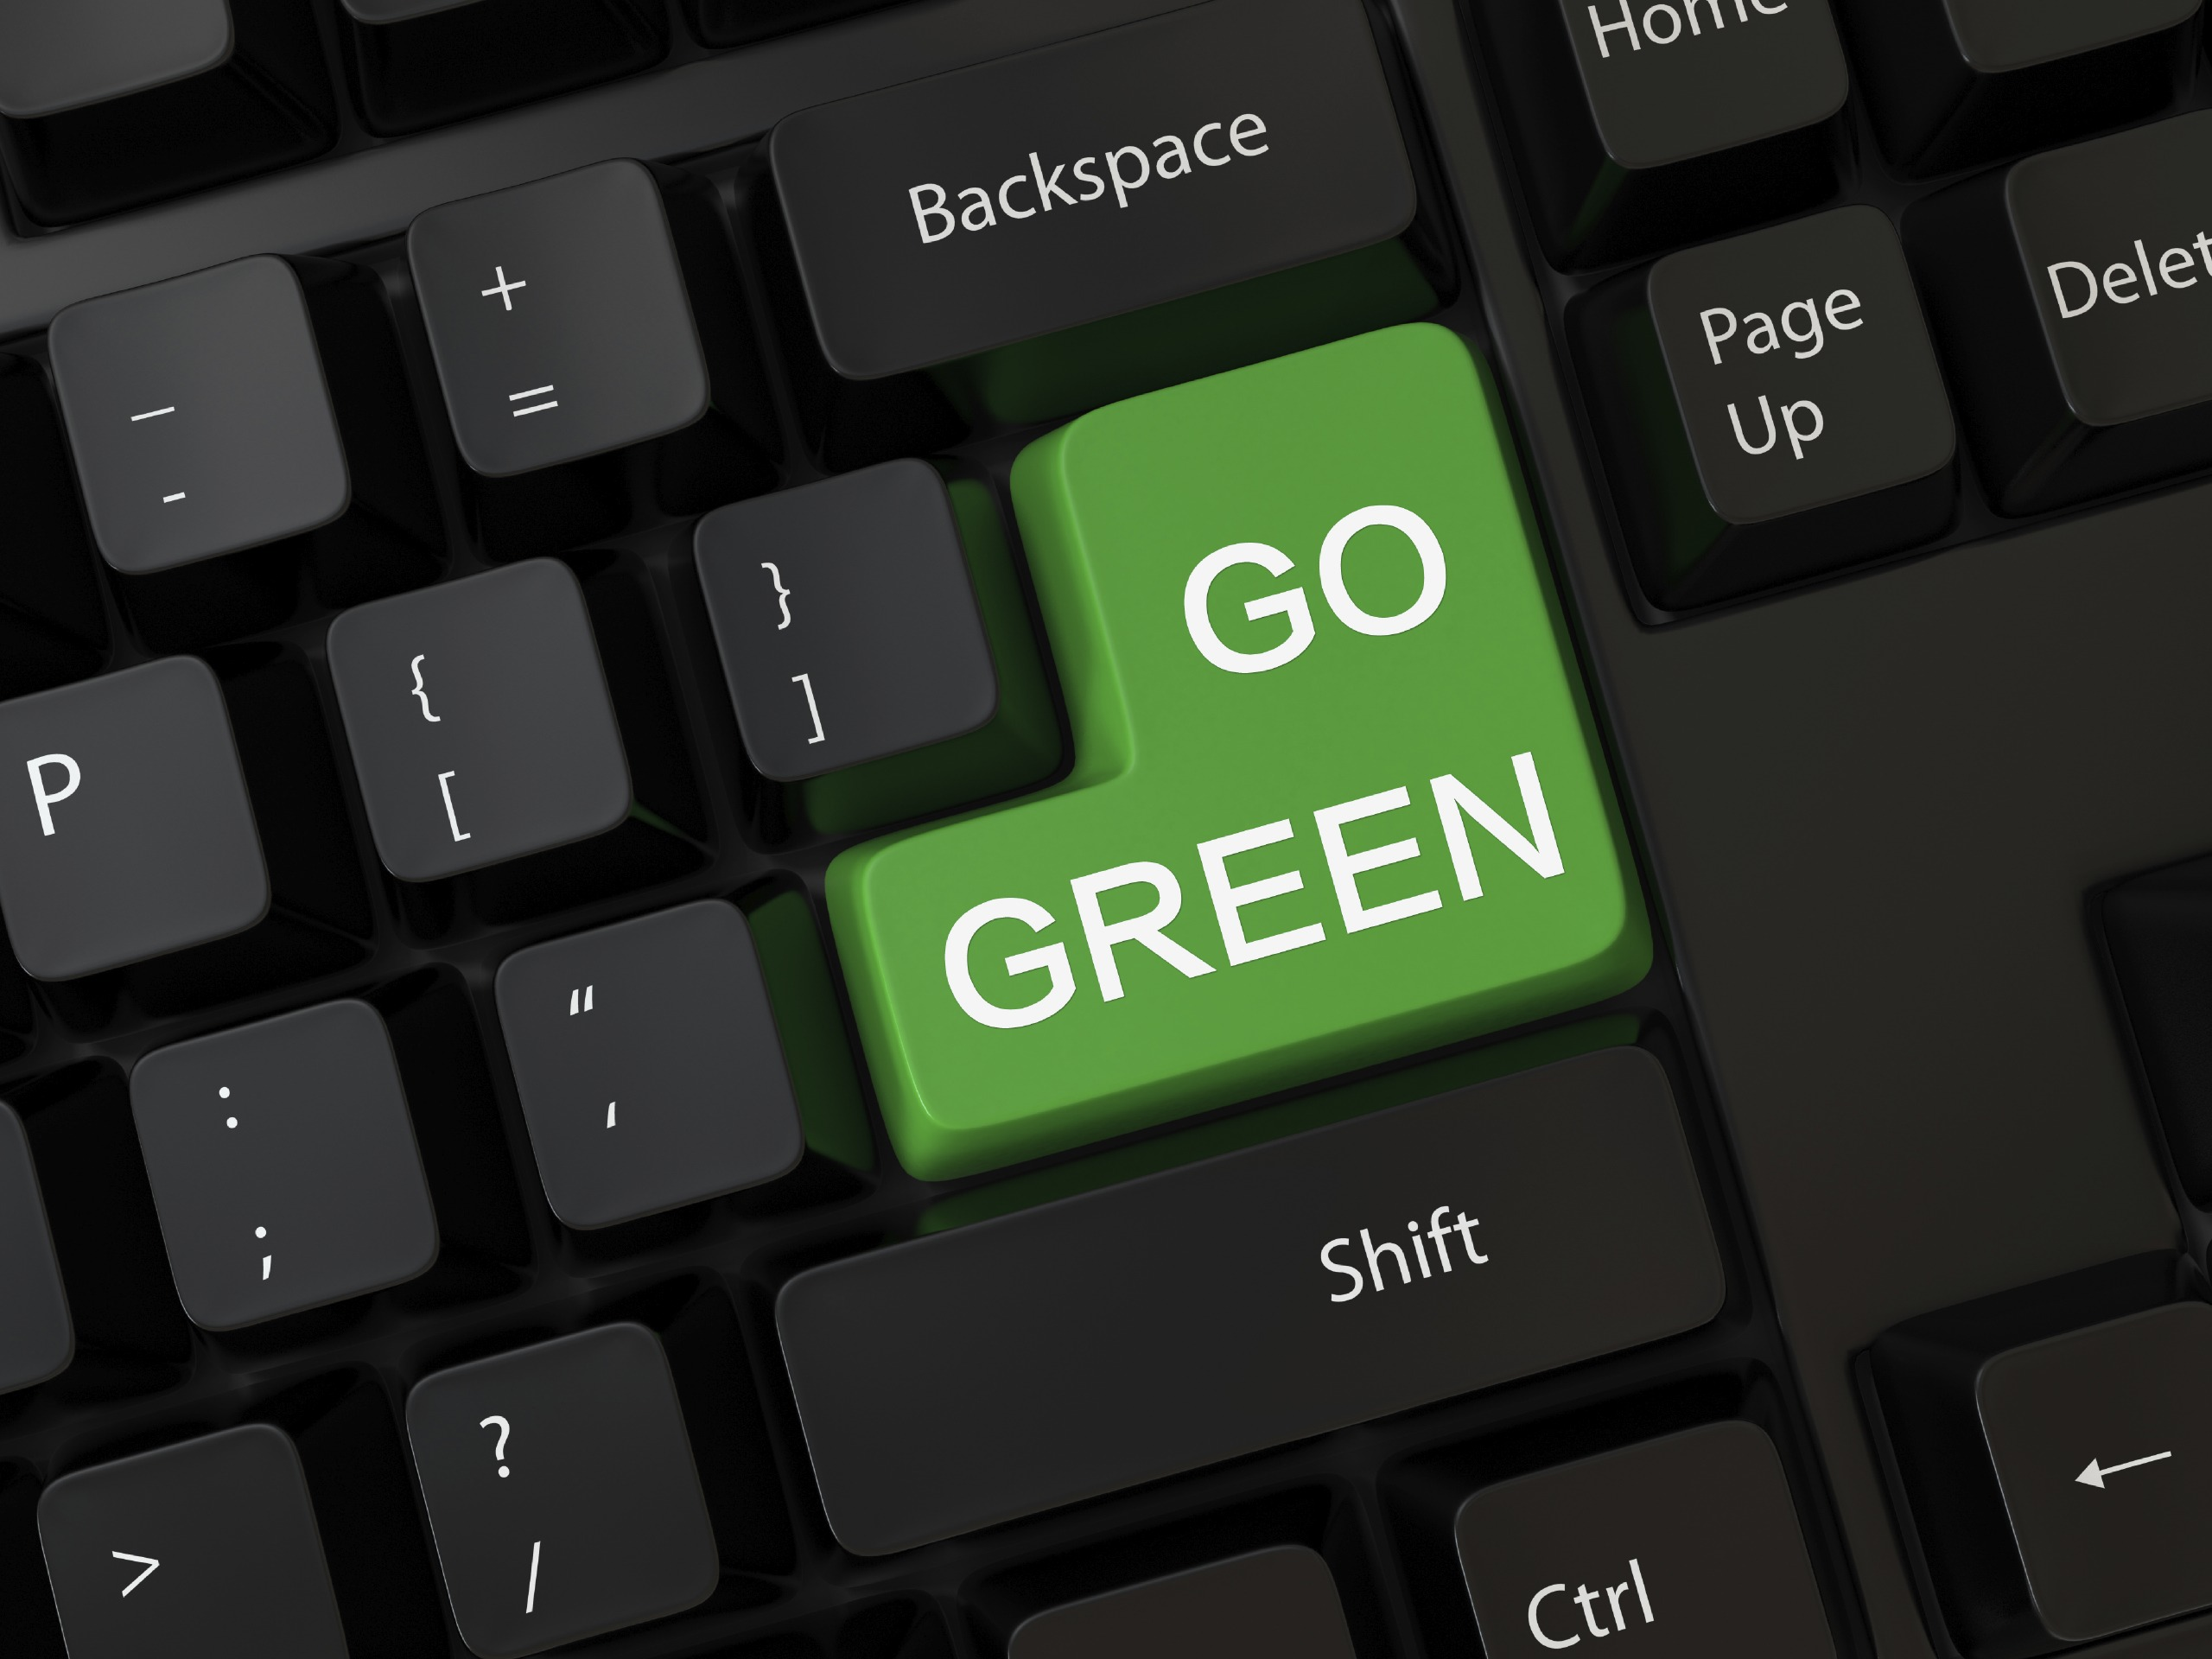 7 Ways Businesses Can Go Green - Quicken Loans Zing Blog